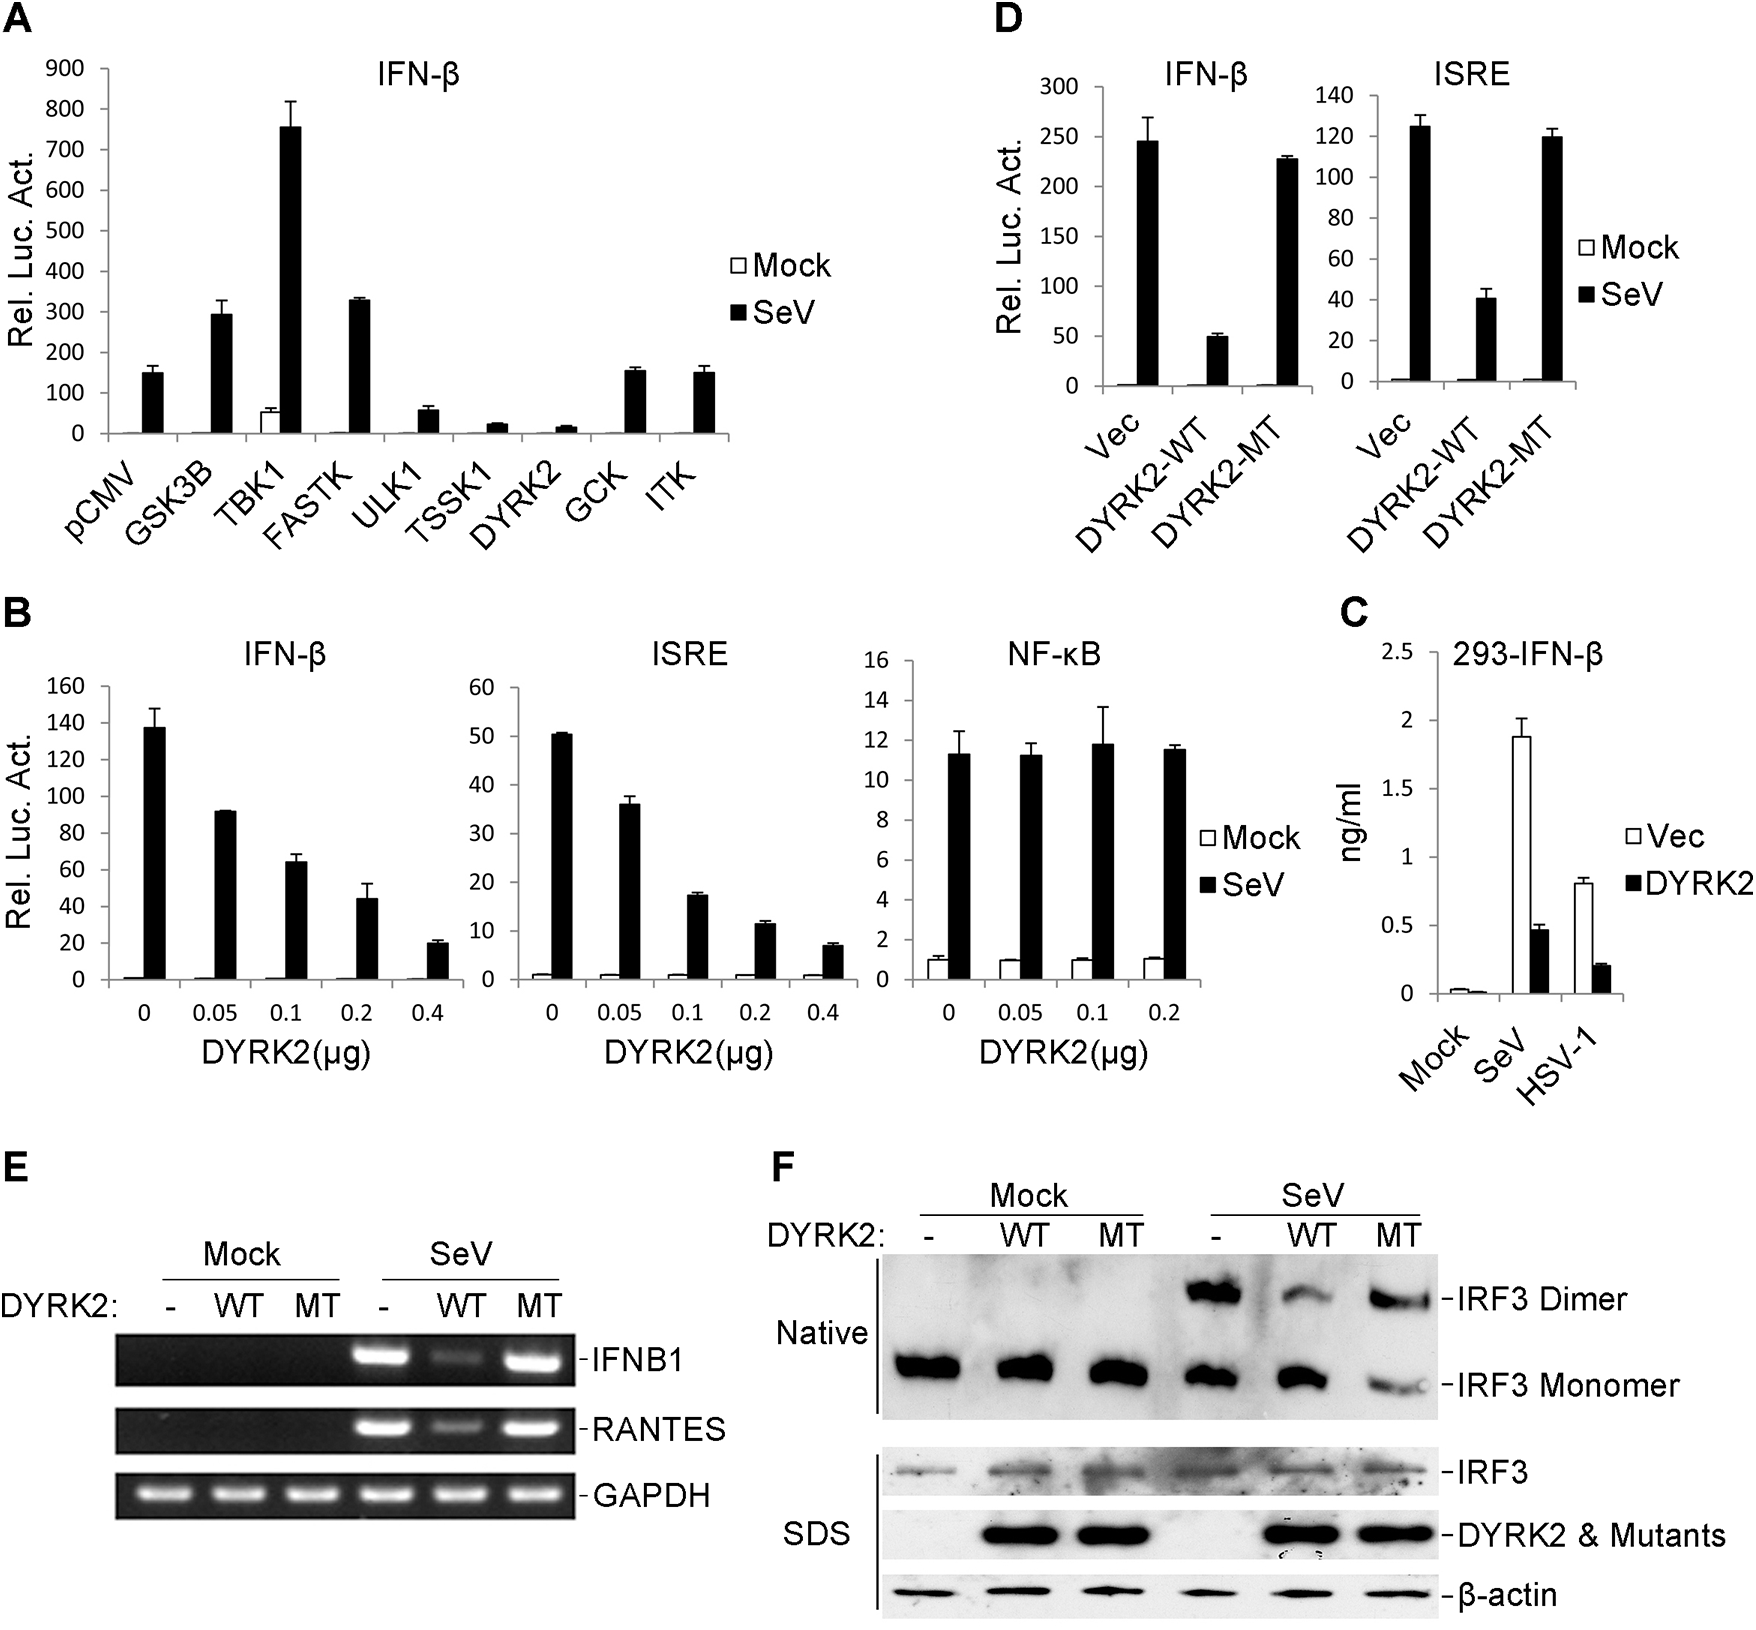 The overexpression of DYRK2 markedly inhibited the virus-triggered activations of IRF3 and IFNB1 gene transcription.